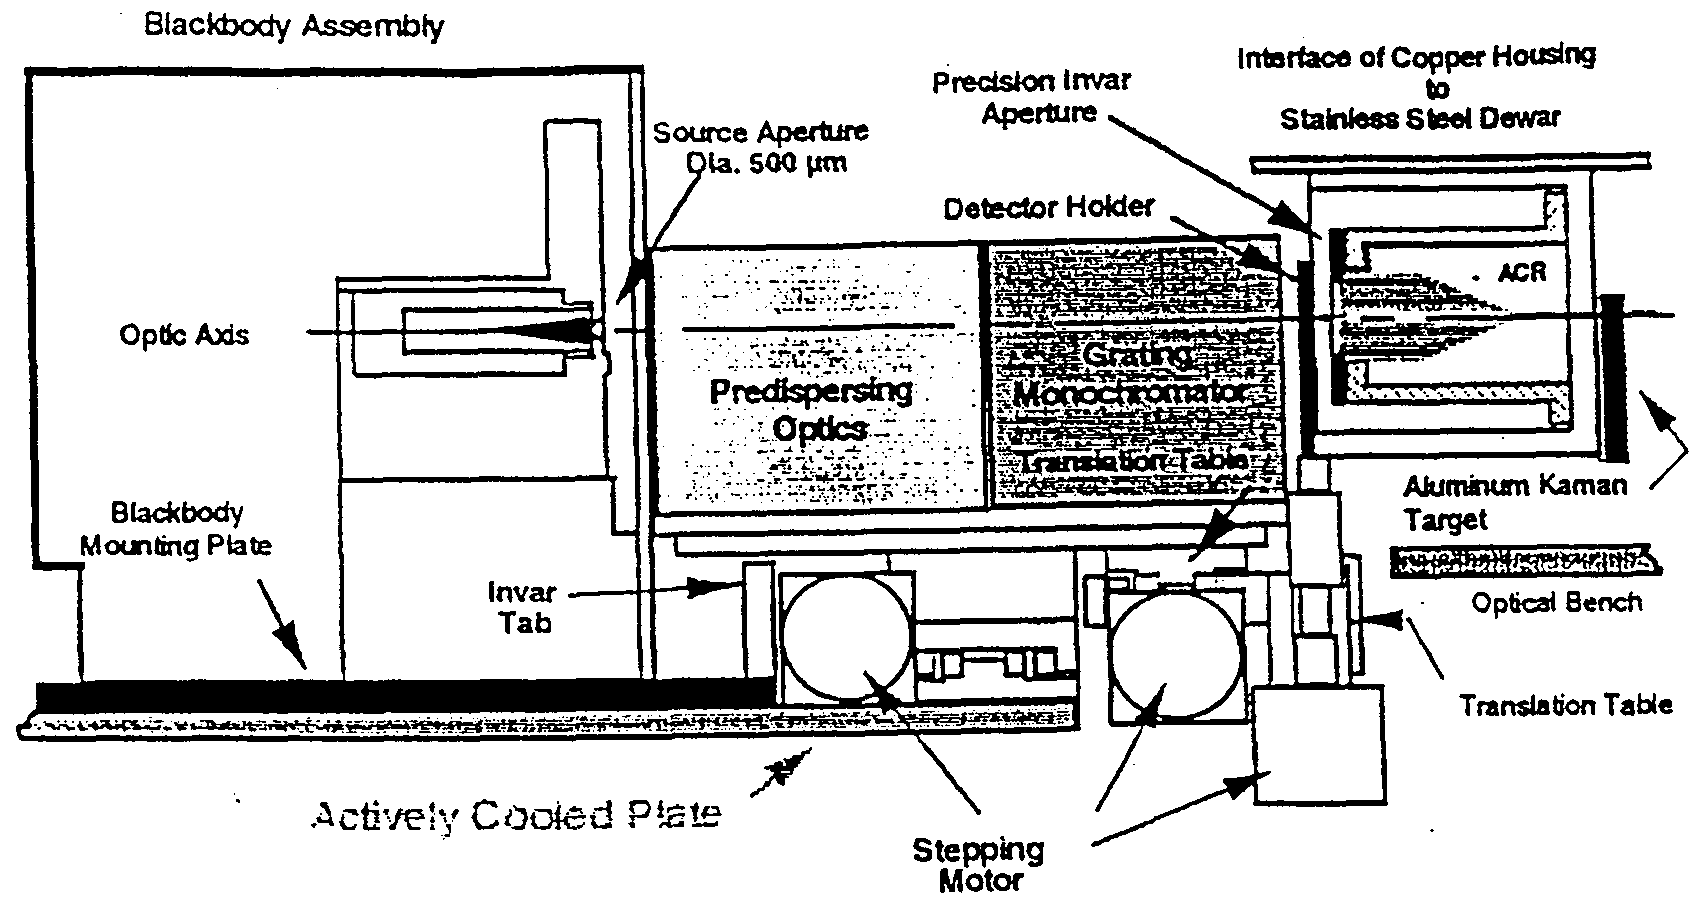 Wo1999053350a9 Monolithic Infrared Spectrometer Apparatus And Rover Mems Wiring Diagram Figure Imgf000078 0001